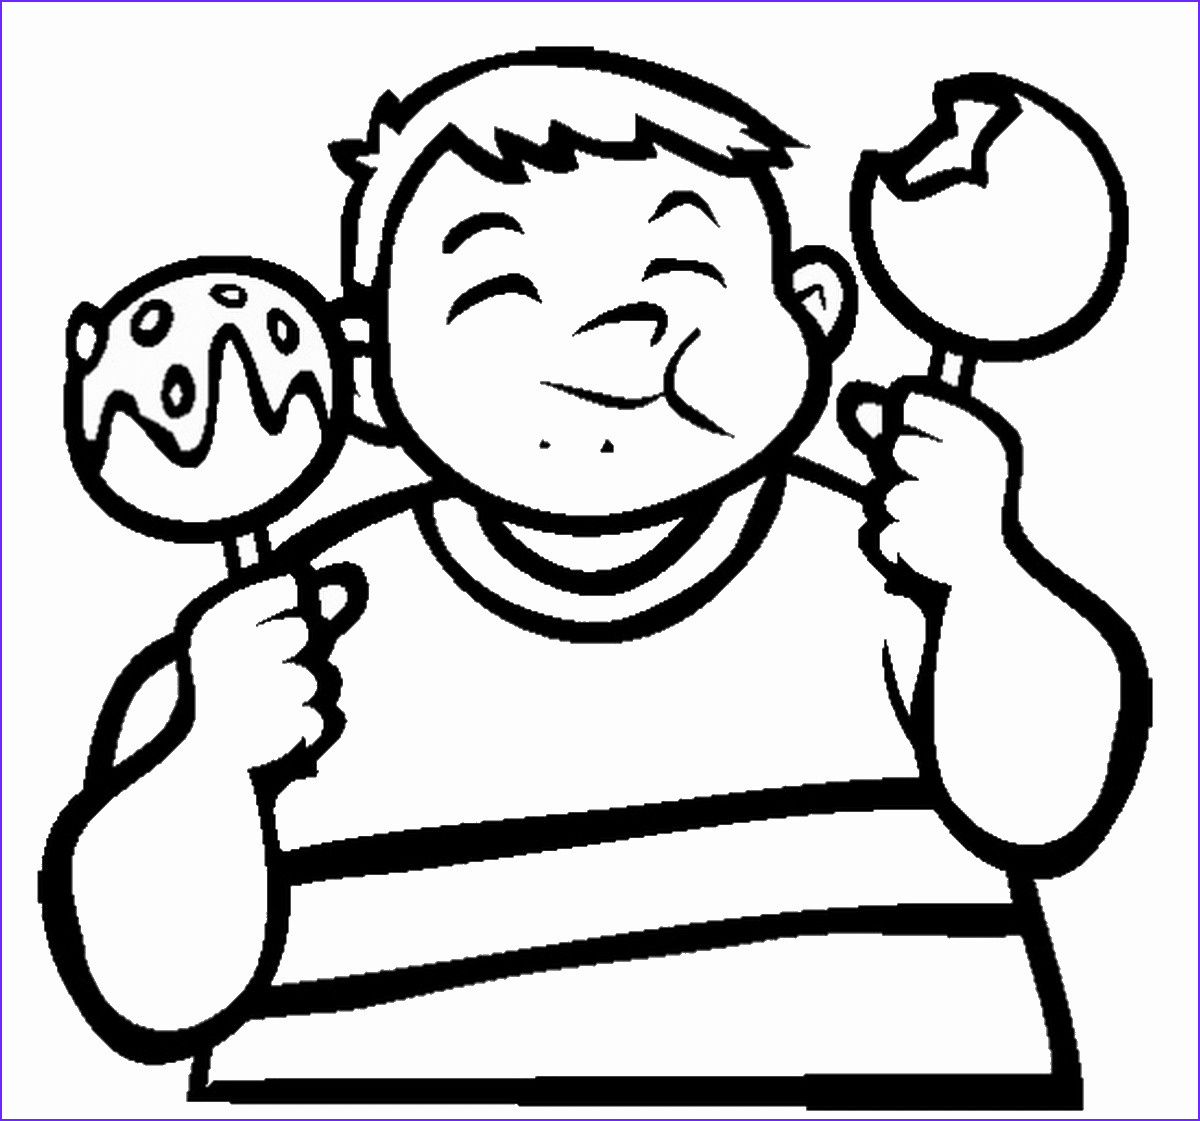 Sweets Coloring Pages New Photos Sweets and Candy Coloring Pages